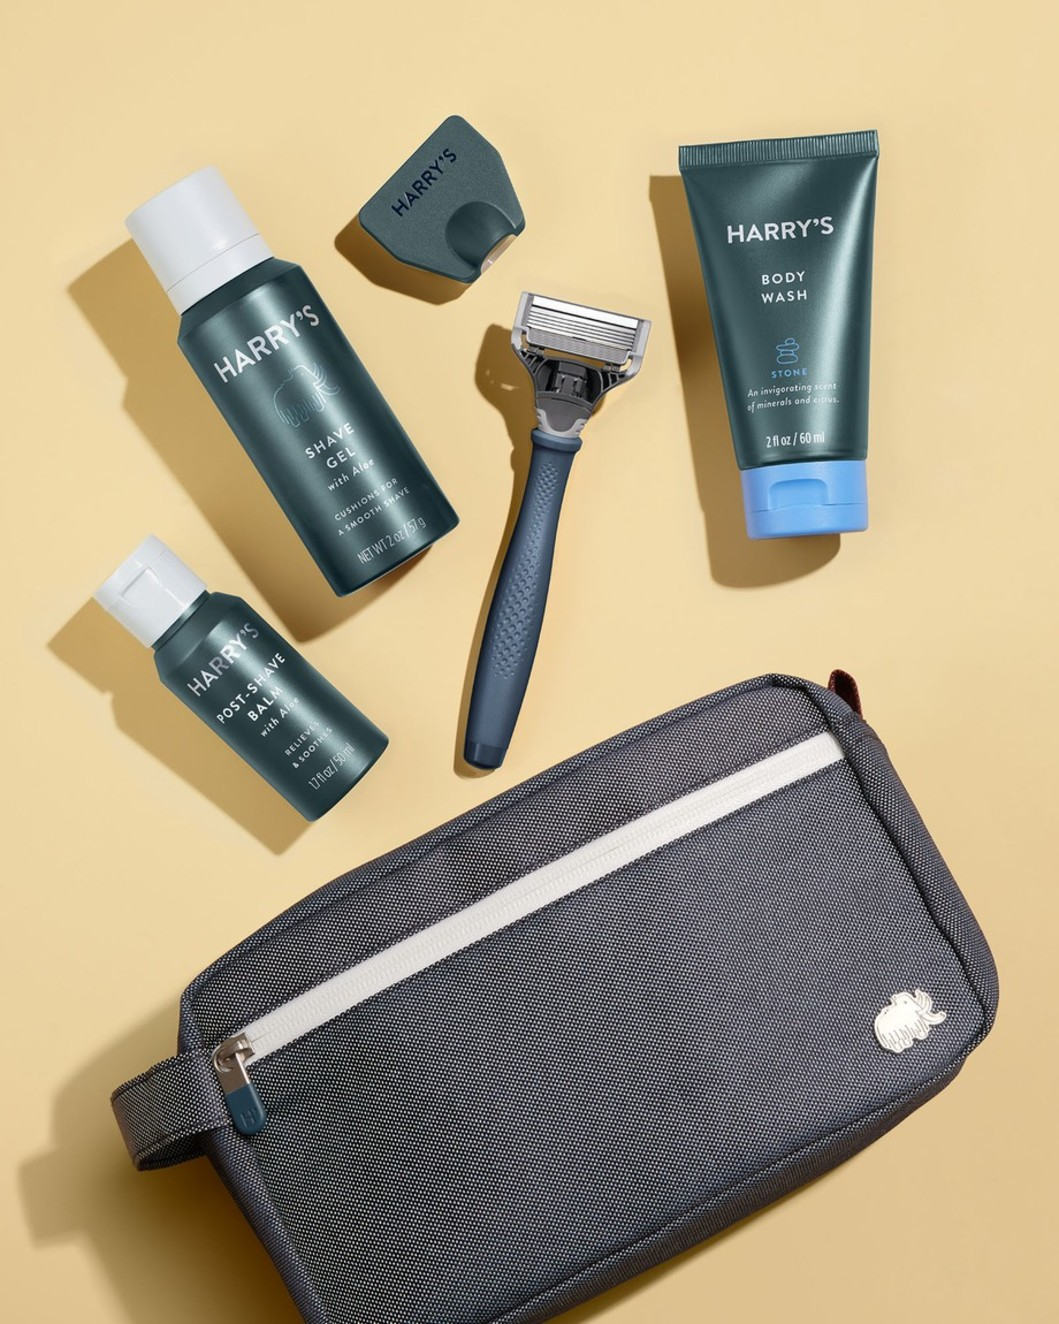 Deluxe Travel Kit - Blue Handle, Stone Body Wash